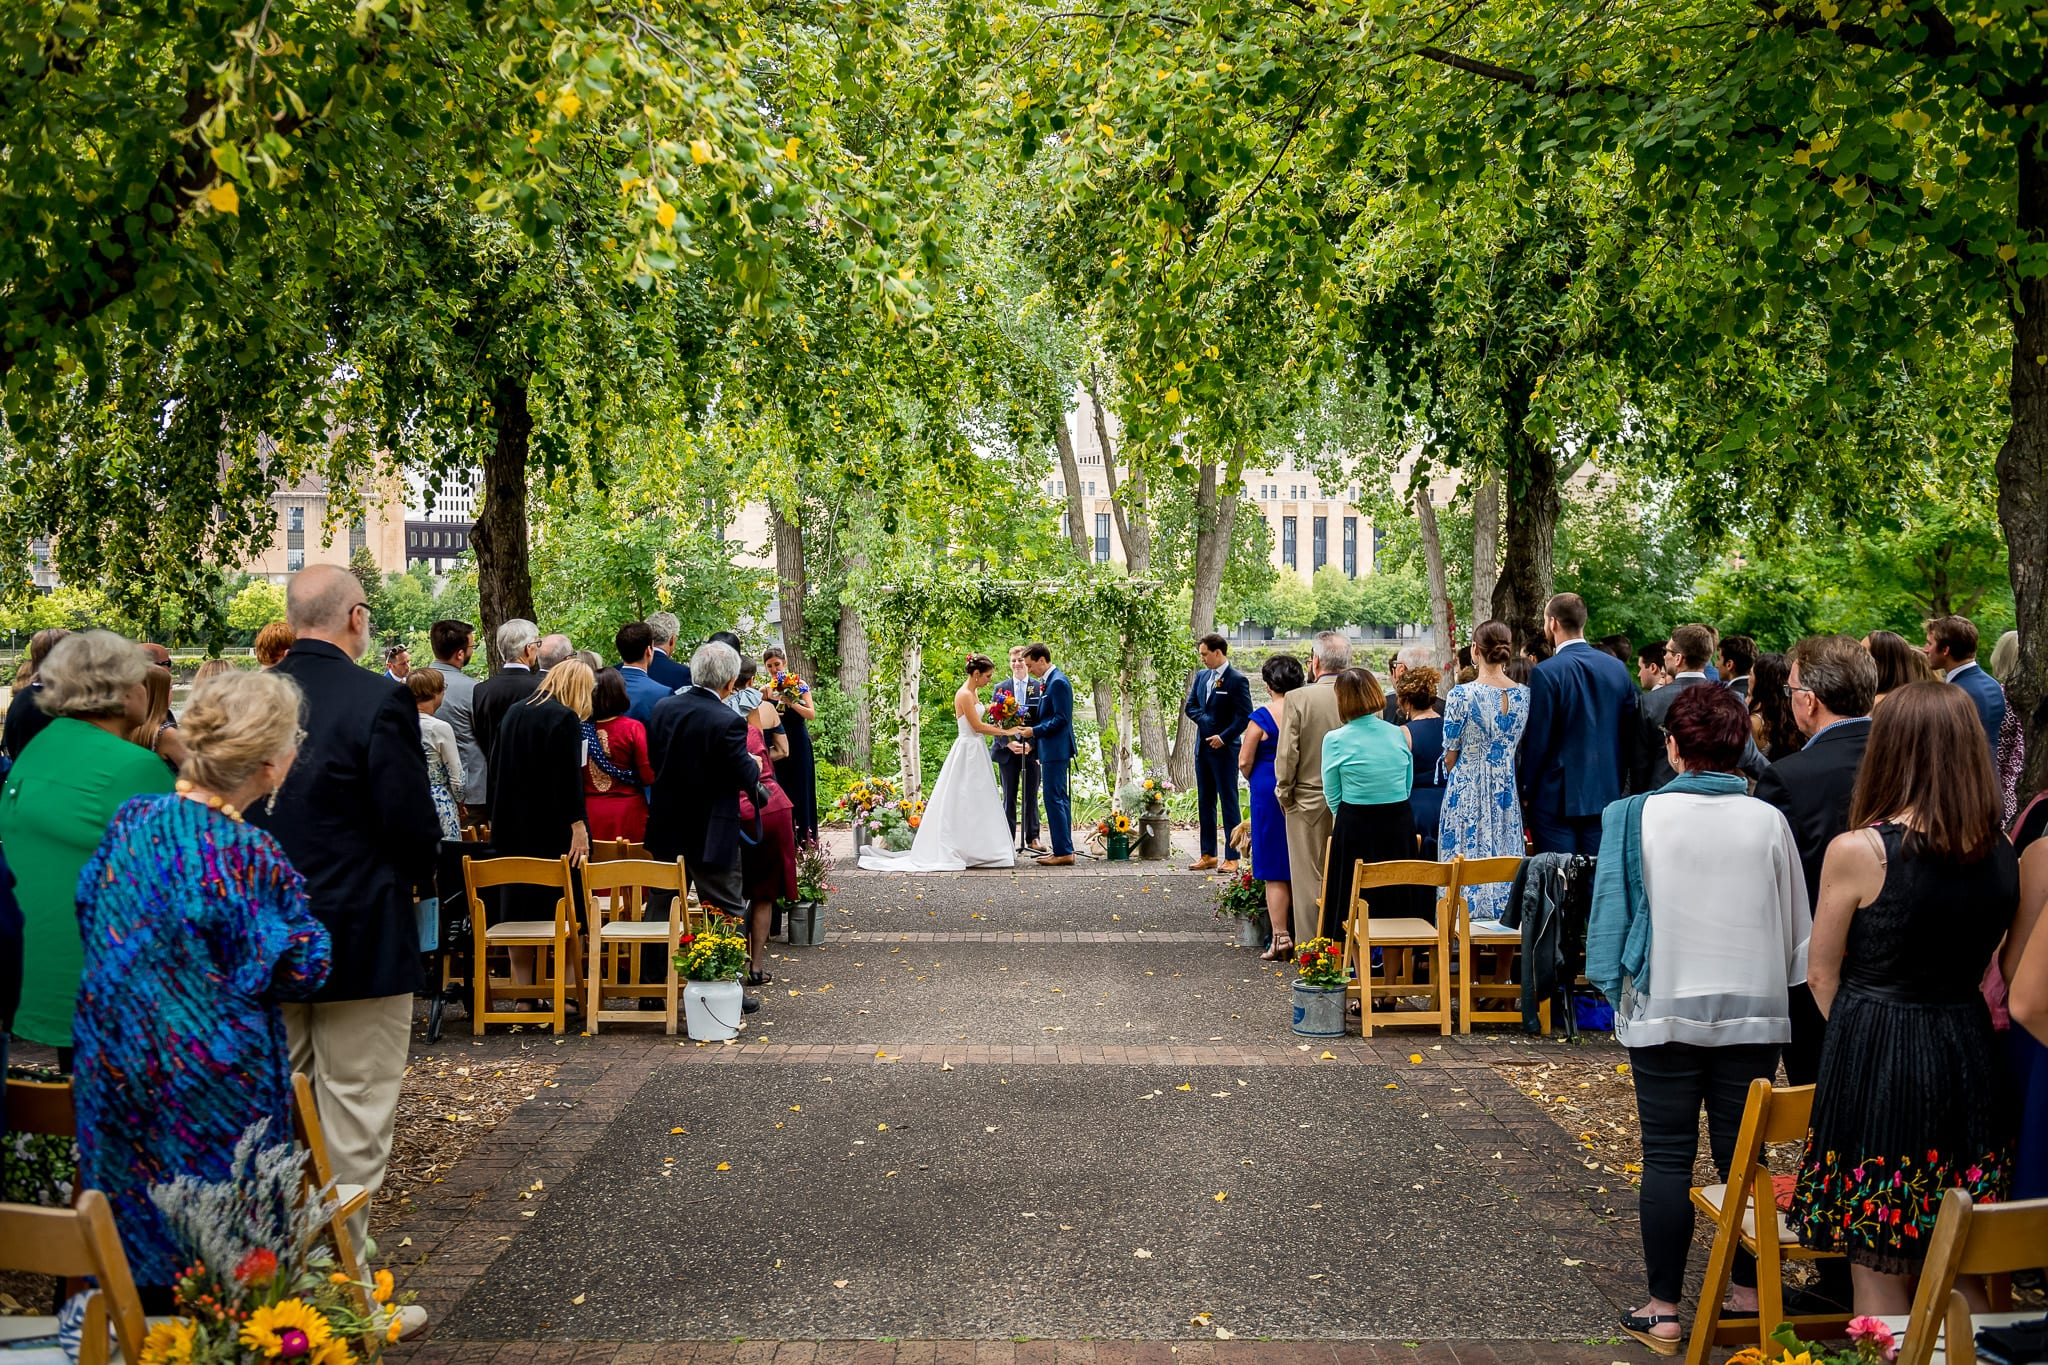 Wide view of the outdoor wedding ceremony at the Nicollet Island Pavilion